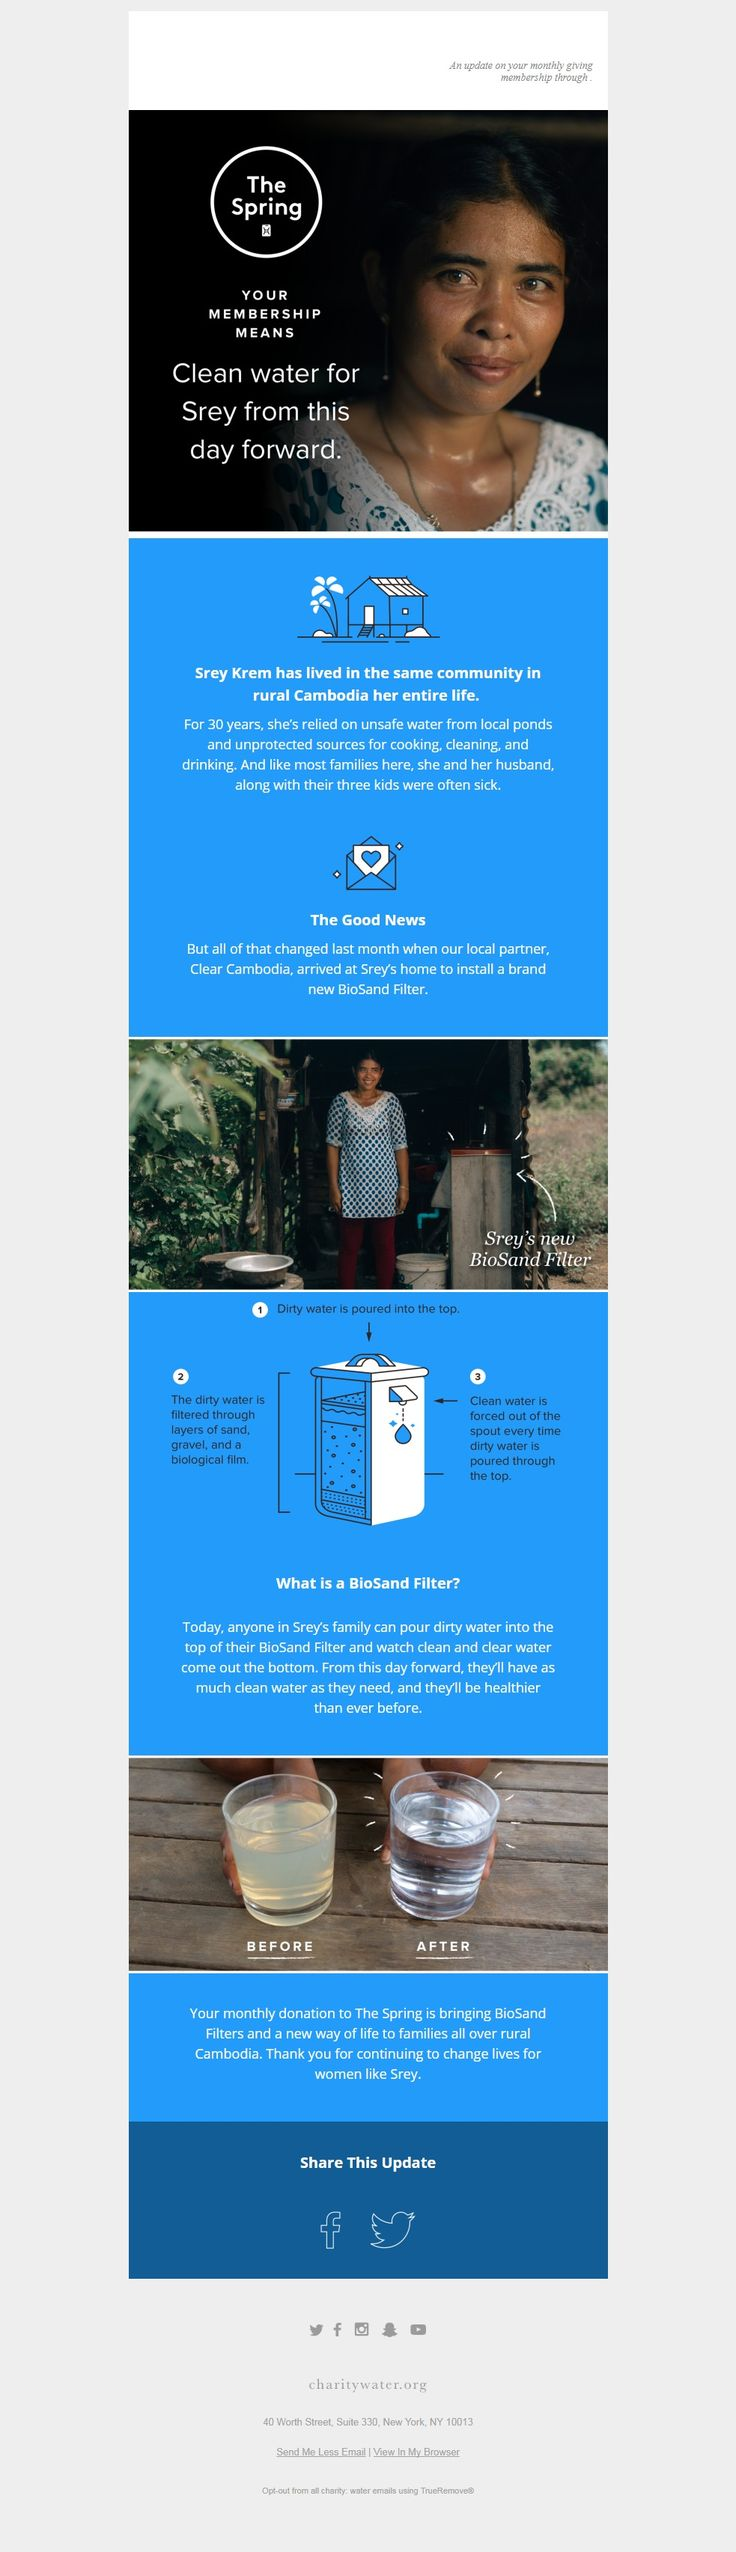 charity: water: A new way of life for Srey.